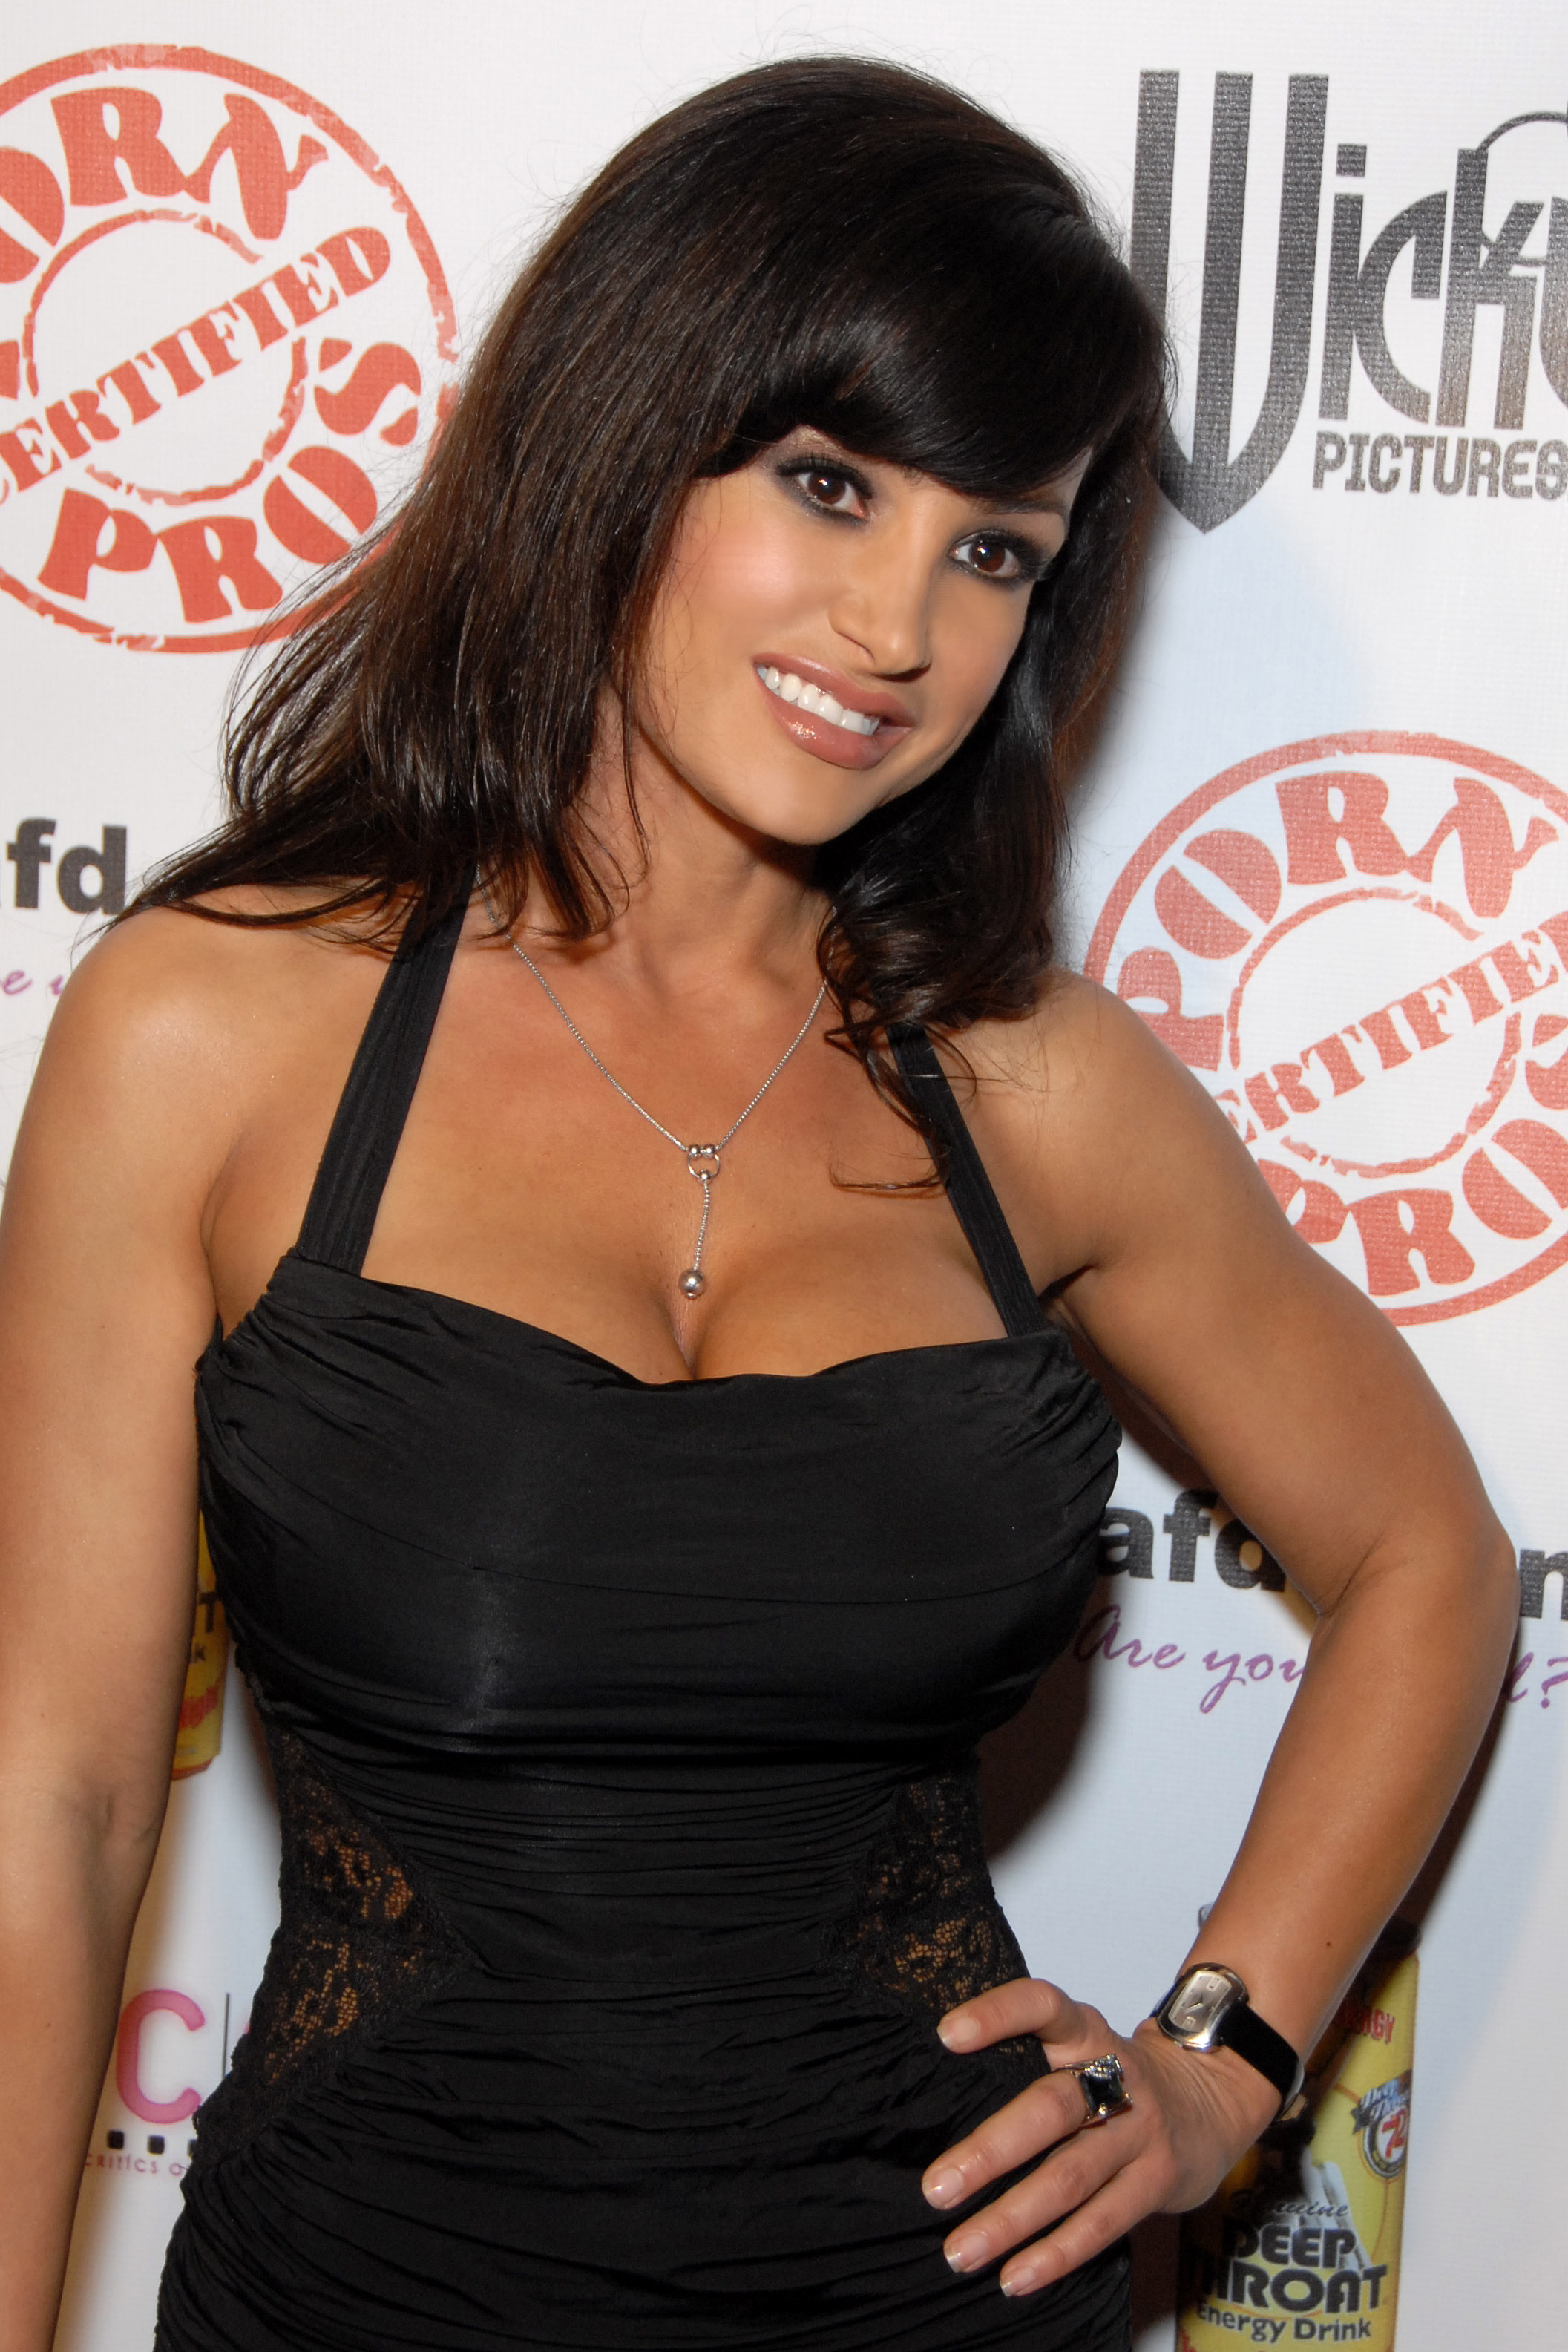 Lisa Ann College Party <b>lisa ann</b> - wikipedia, the free encyclopedia